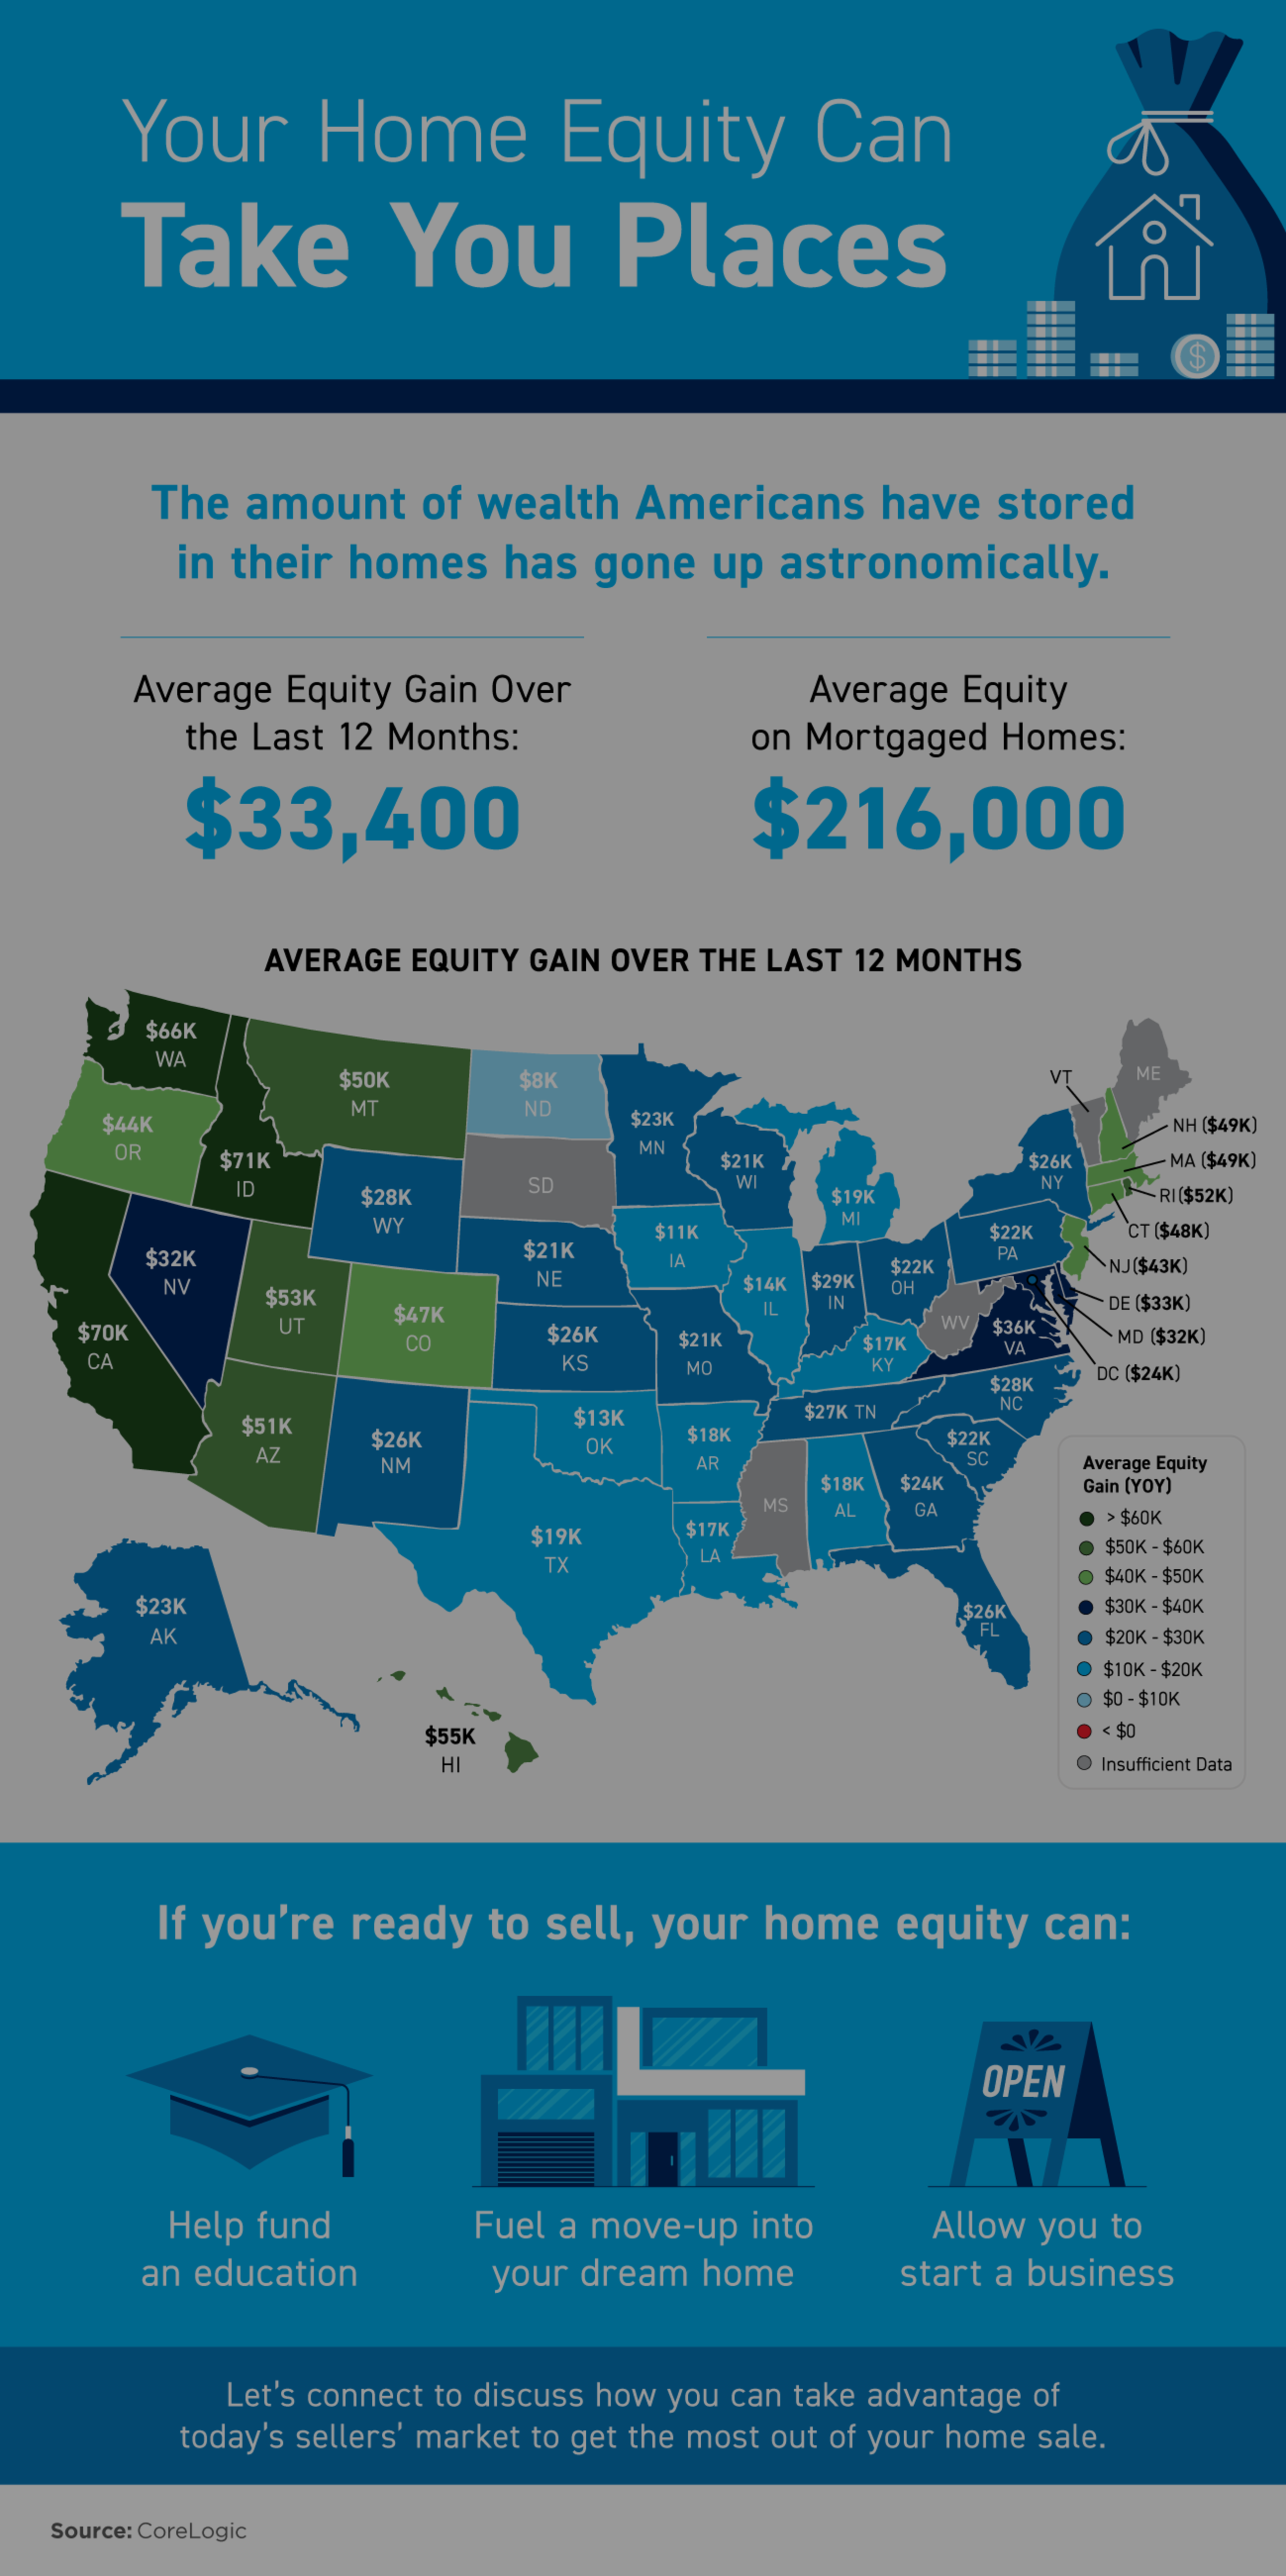 Your Home Equity Can Take You Places